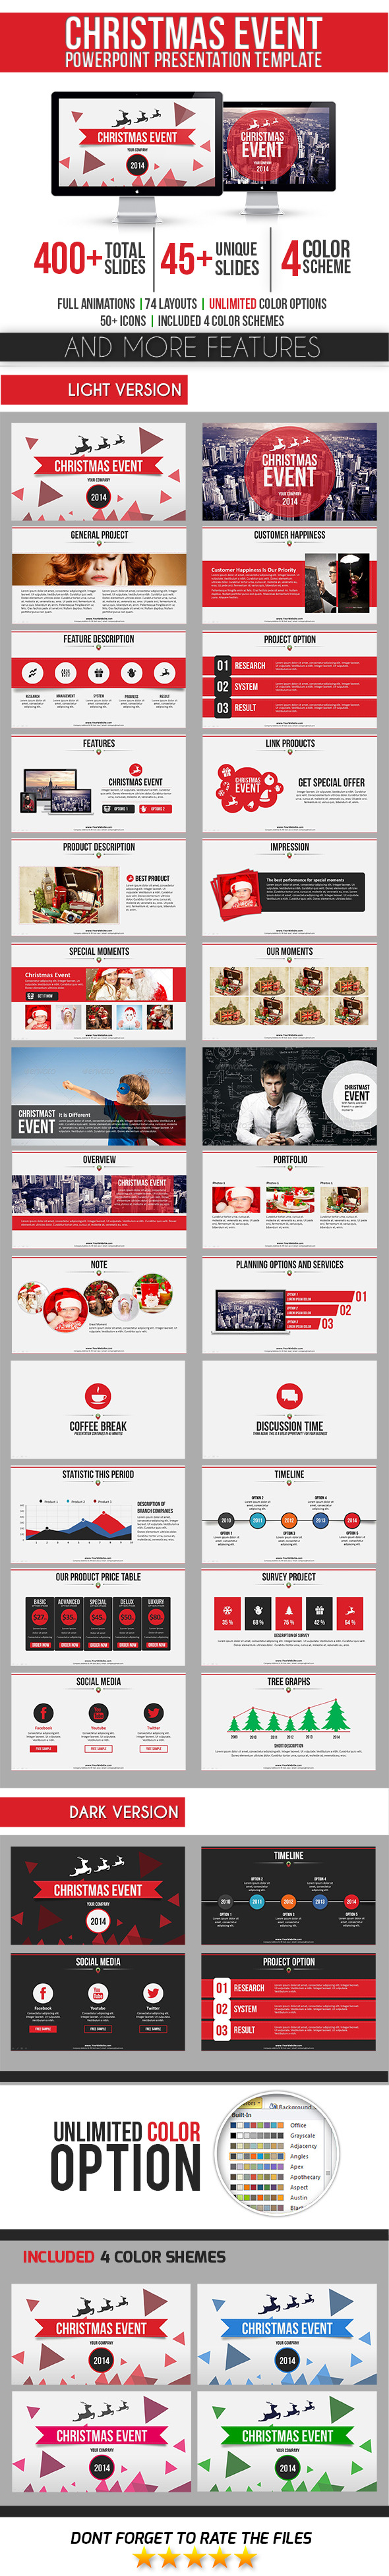 Christmas Event PowerPoint Template - Business PowerPoint Templates